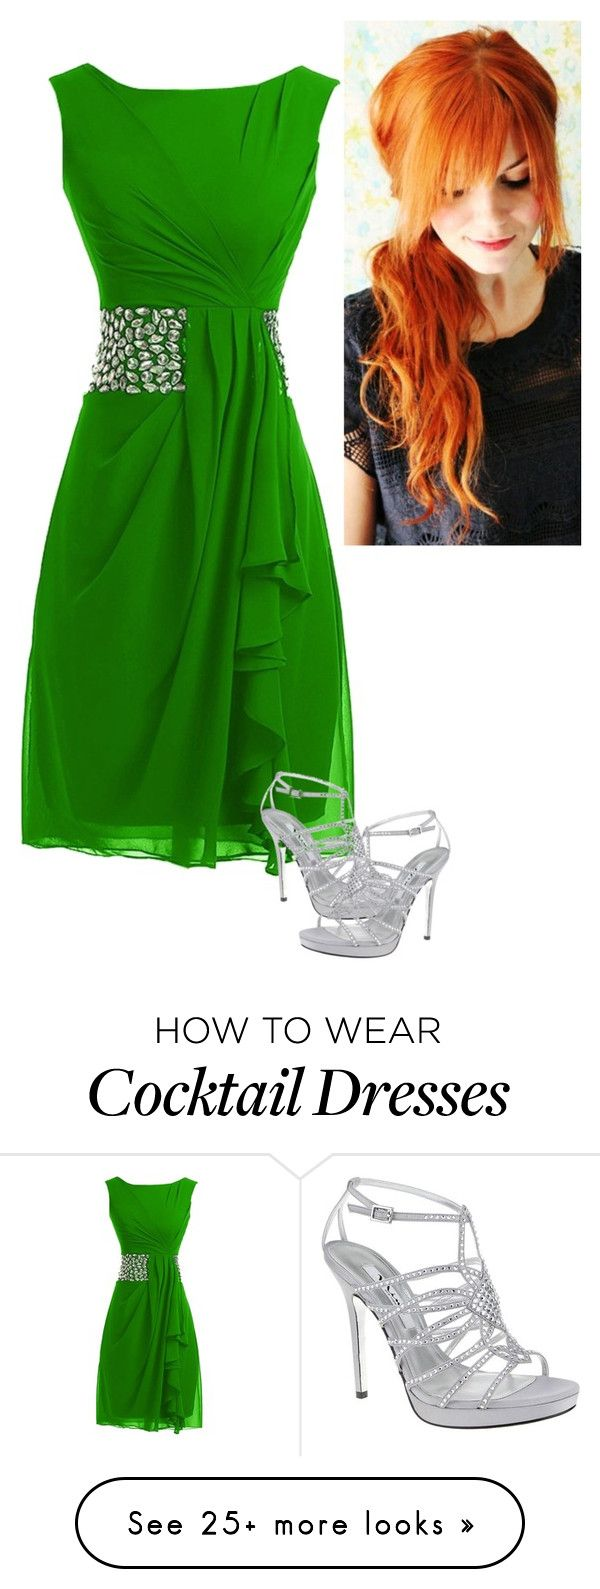 """Untitled #458"" by dragon-mermaid on Polyvore featuring Nina"